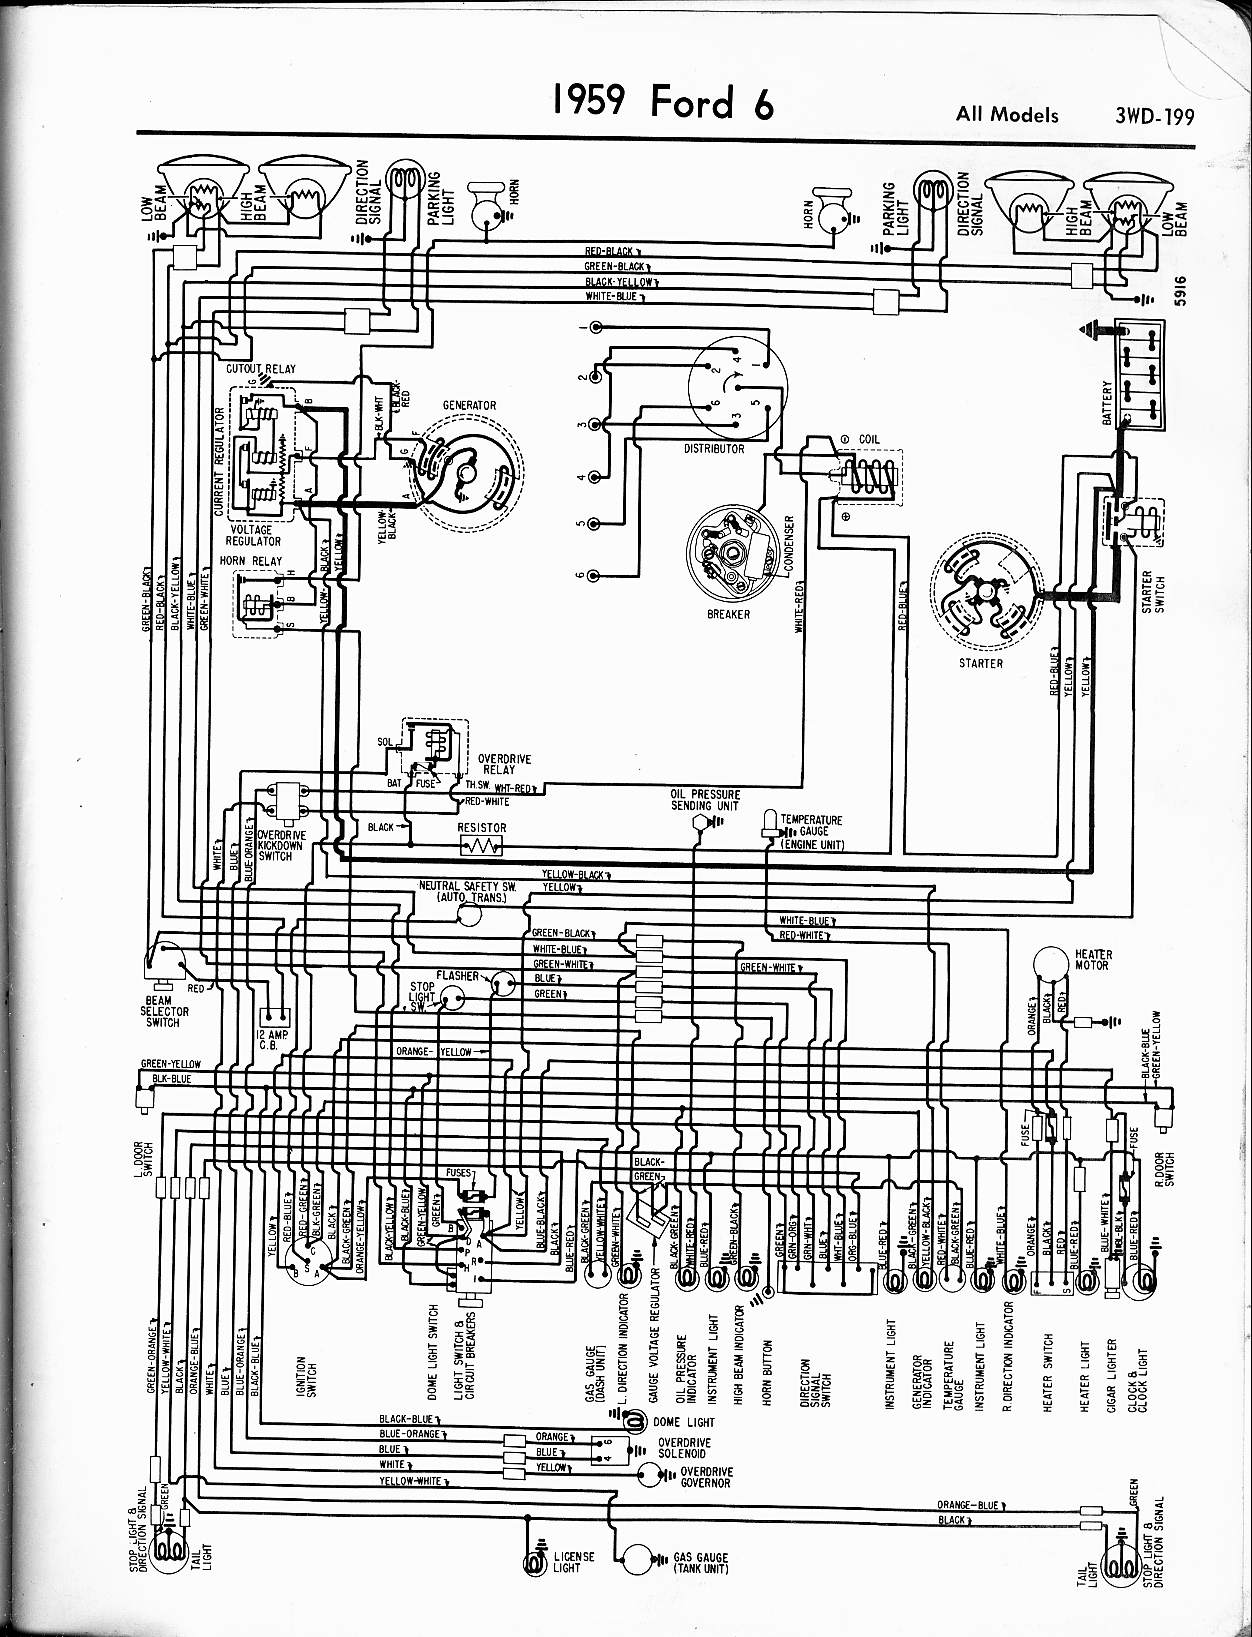 i need a headlight switch wiring diagram for a 59 f100 pick up can you provide any instructions. Black Bedroom Furniture Sets. Home Design Ideas